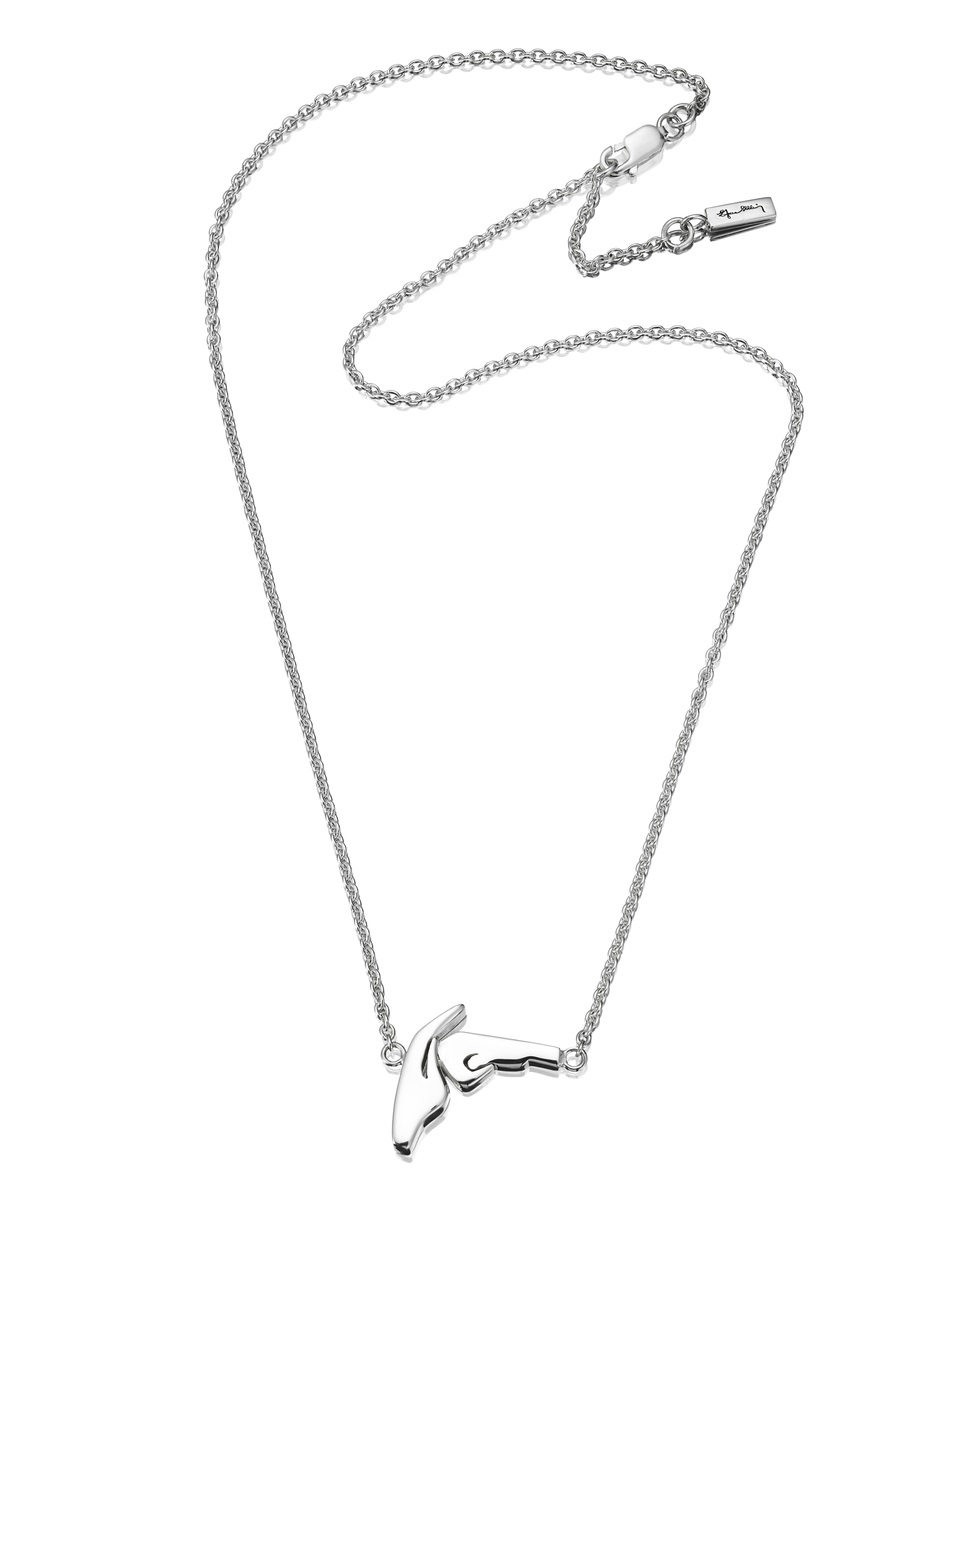 Hold Back Necklace 10-100-01197(1)